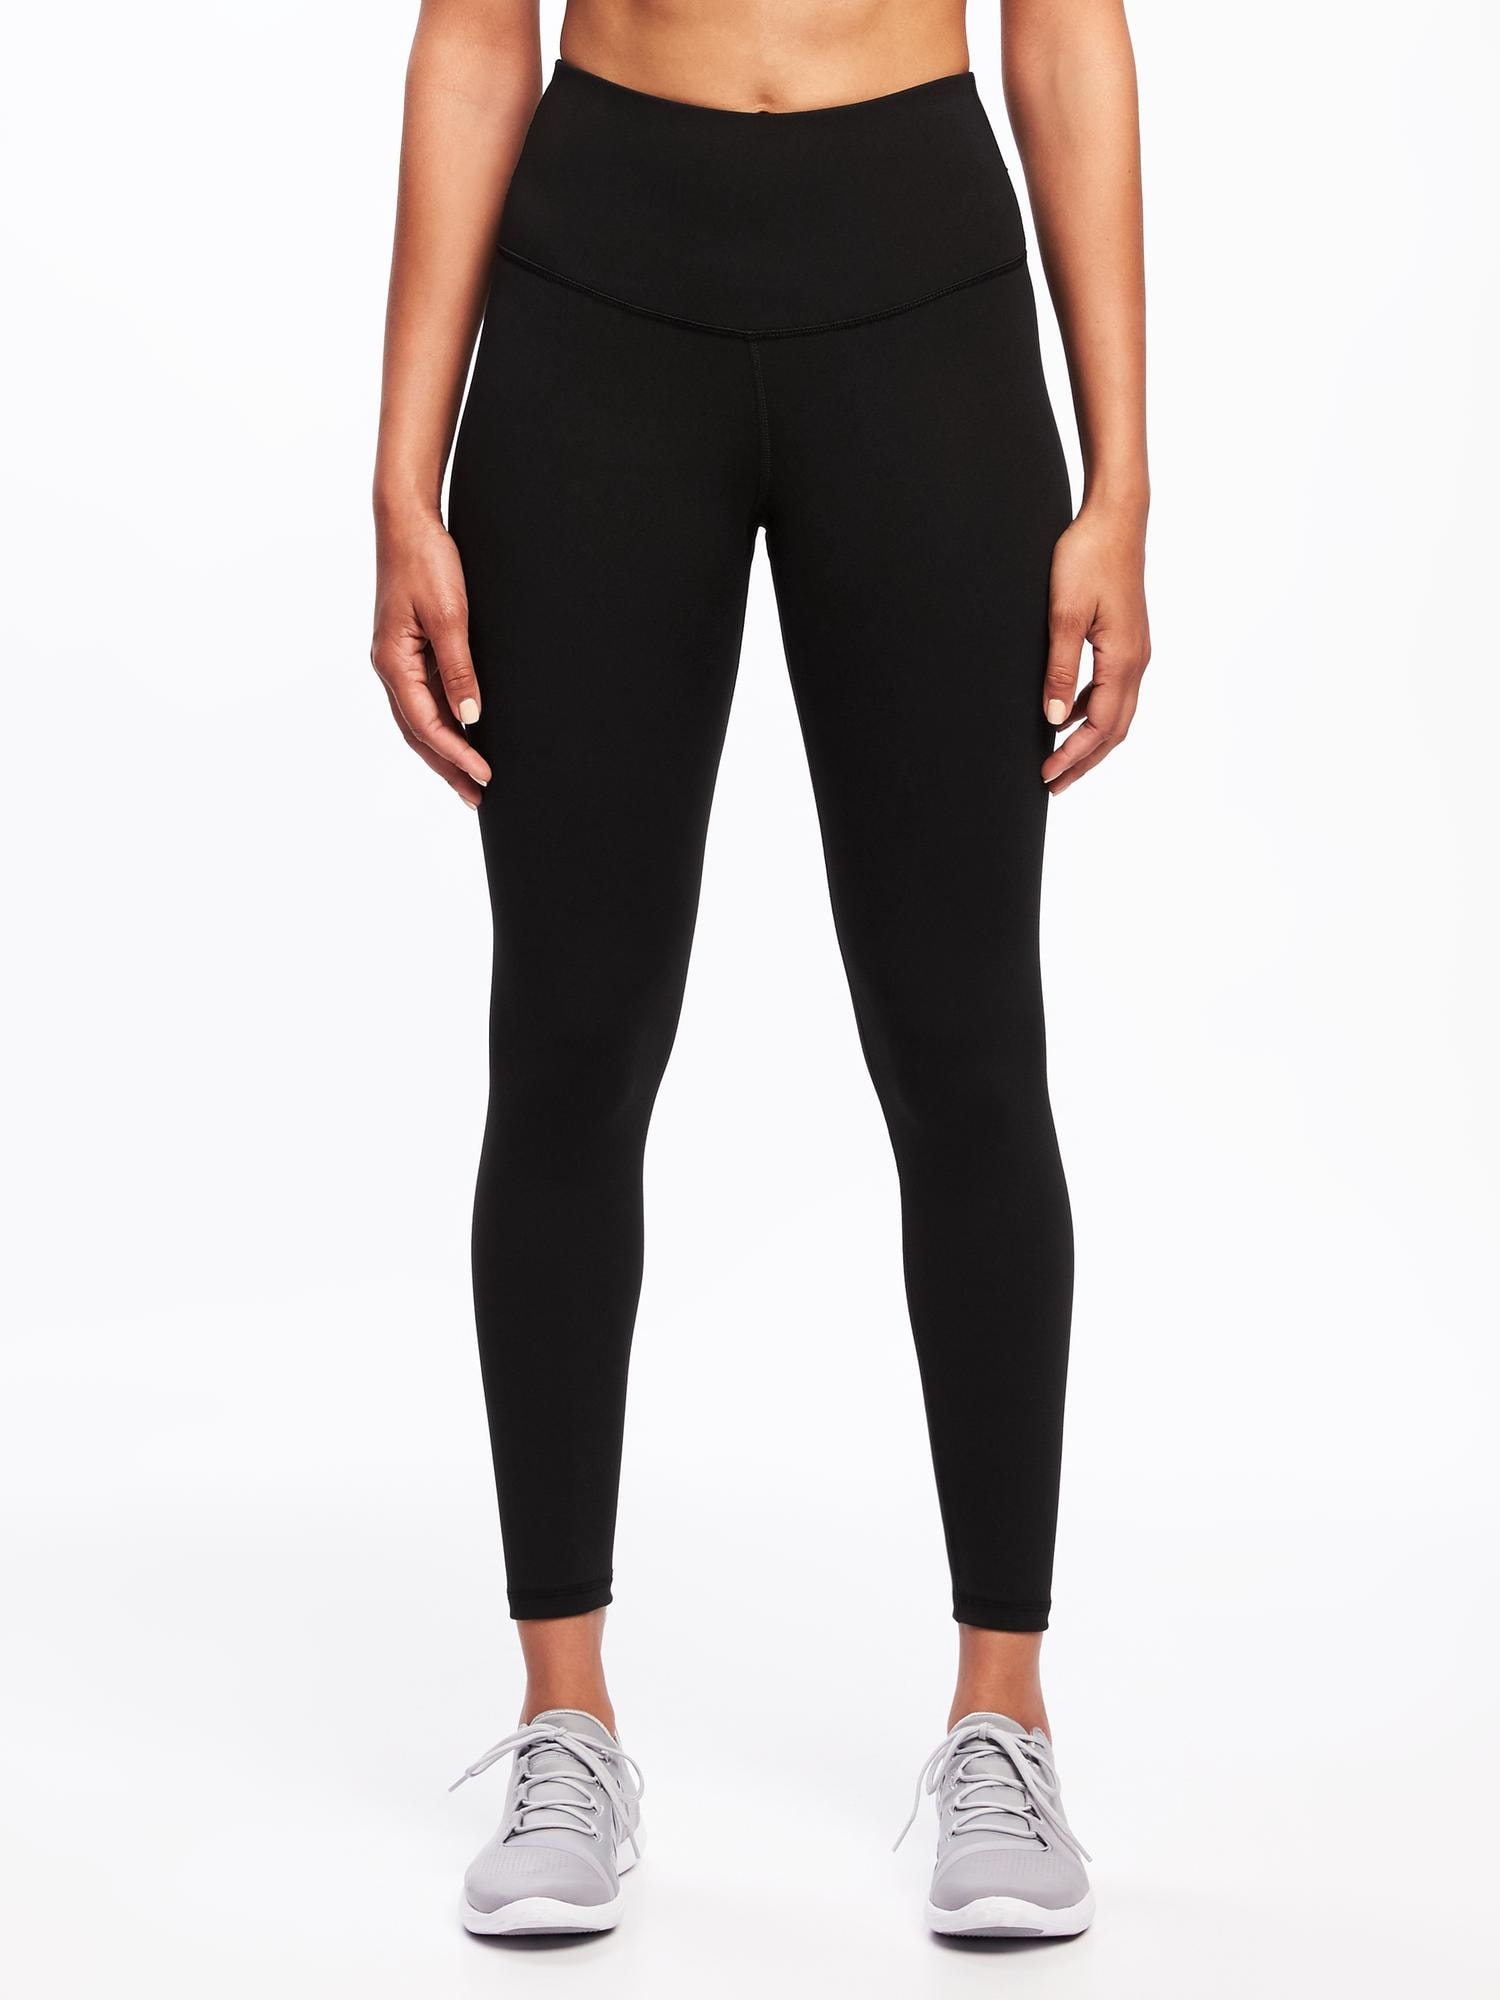 86619bb8e6 High-Rise Elevate 7/8-Length Compression Leggings for Women | Old Navy